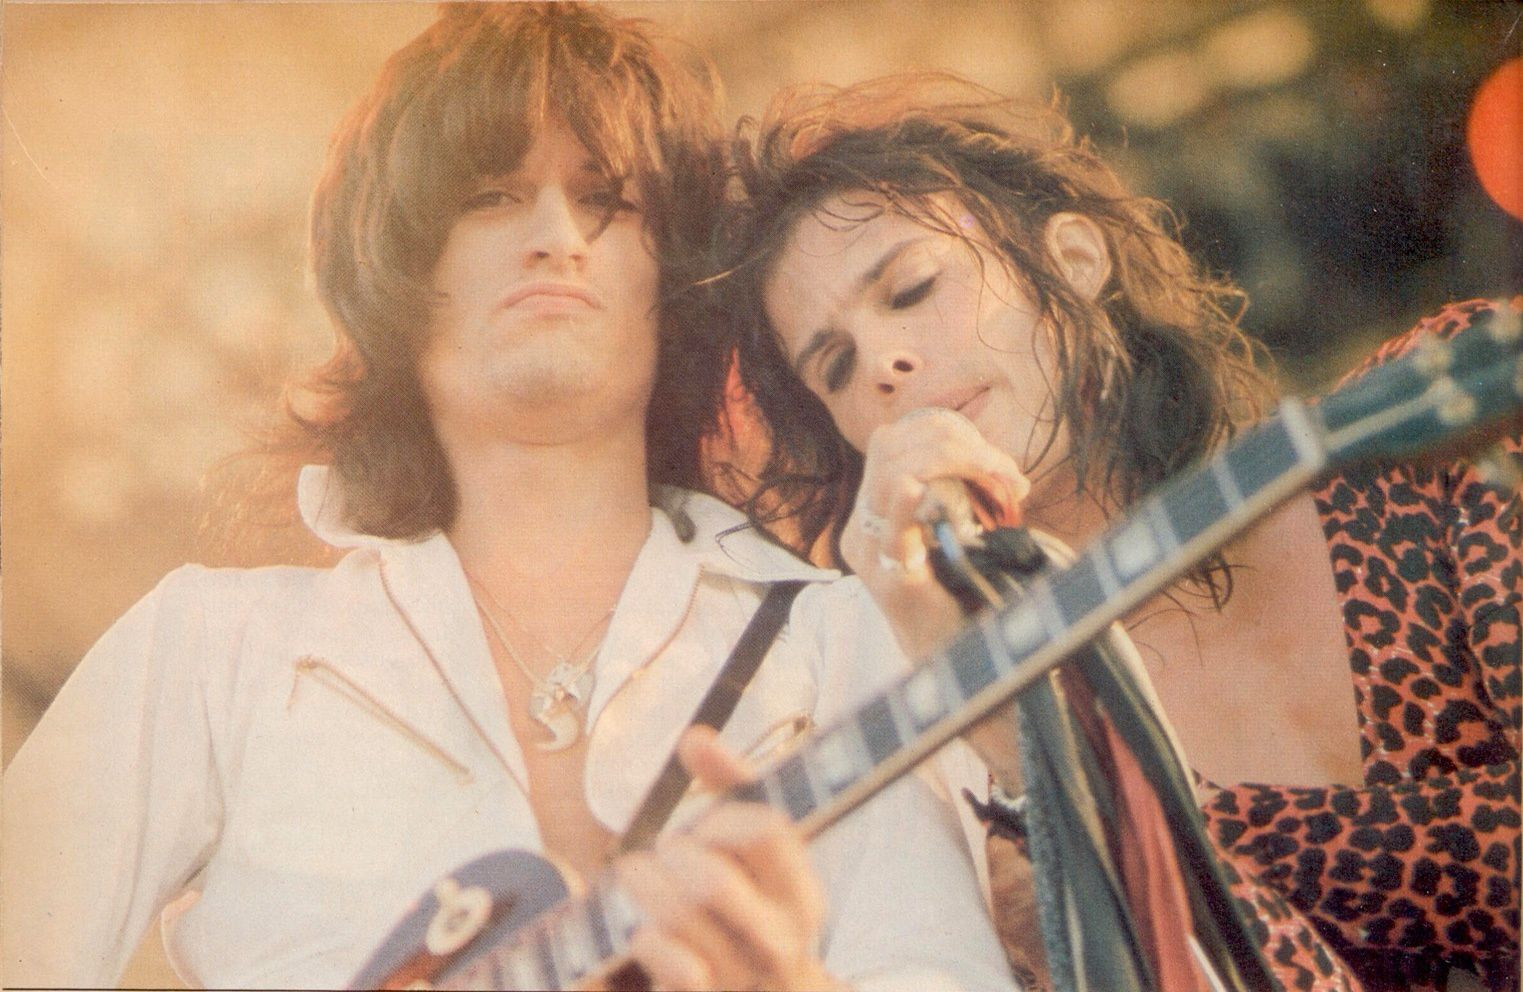 Joe Perry - 1976 - on stage with Steven Tyler